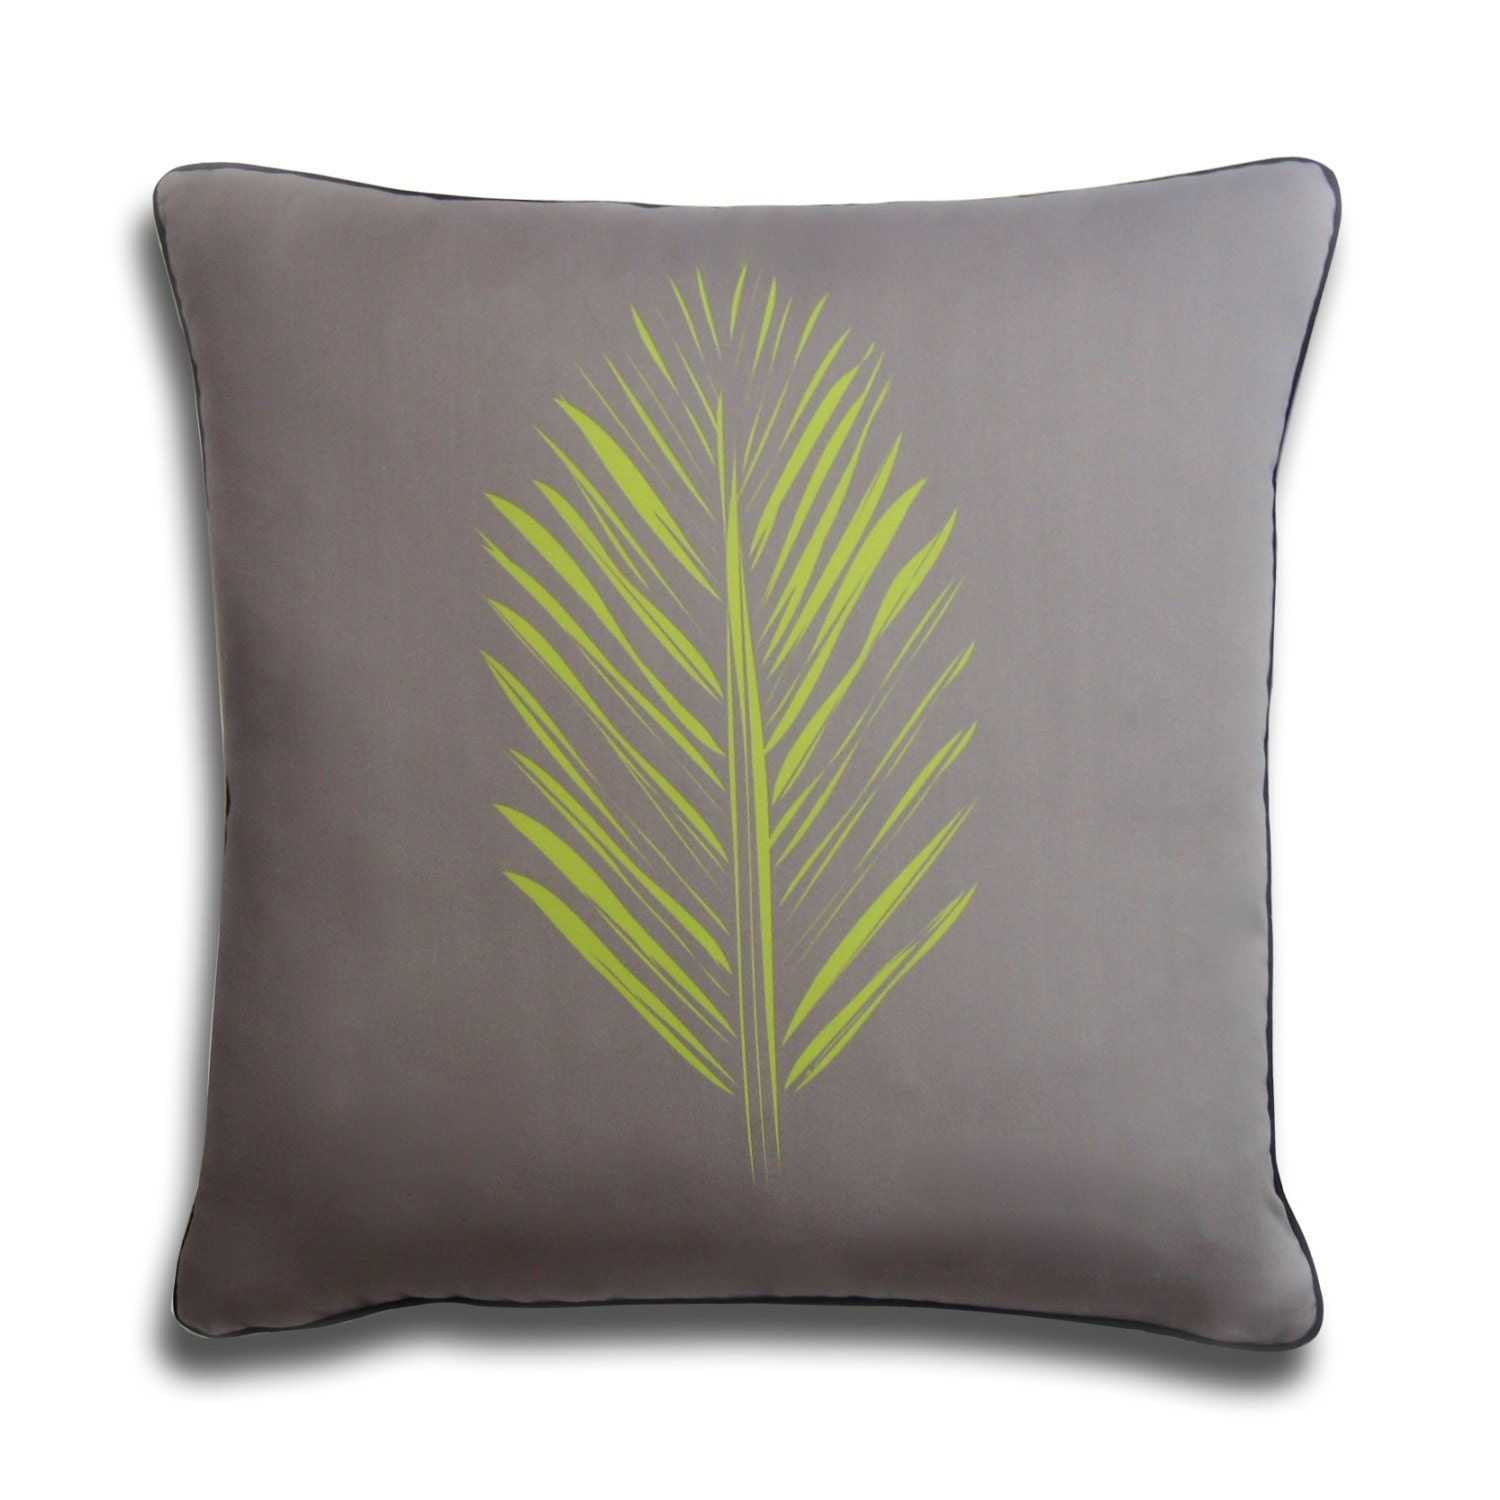 Gray and Green Feather Leaf Decorative Pillow Organic Cotton